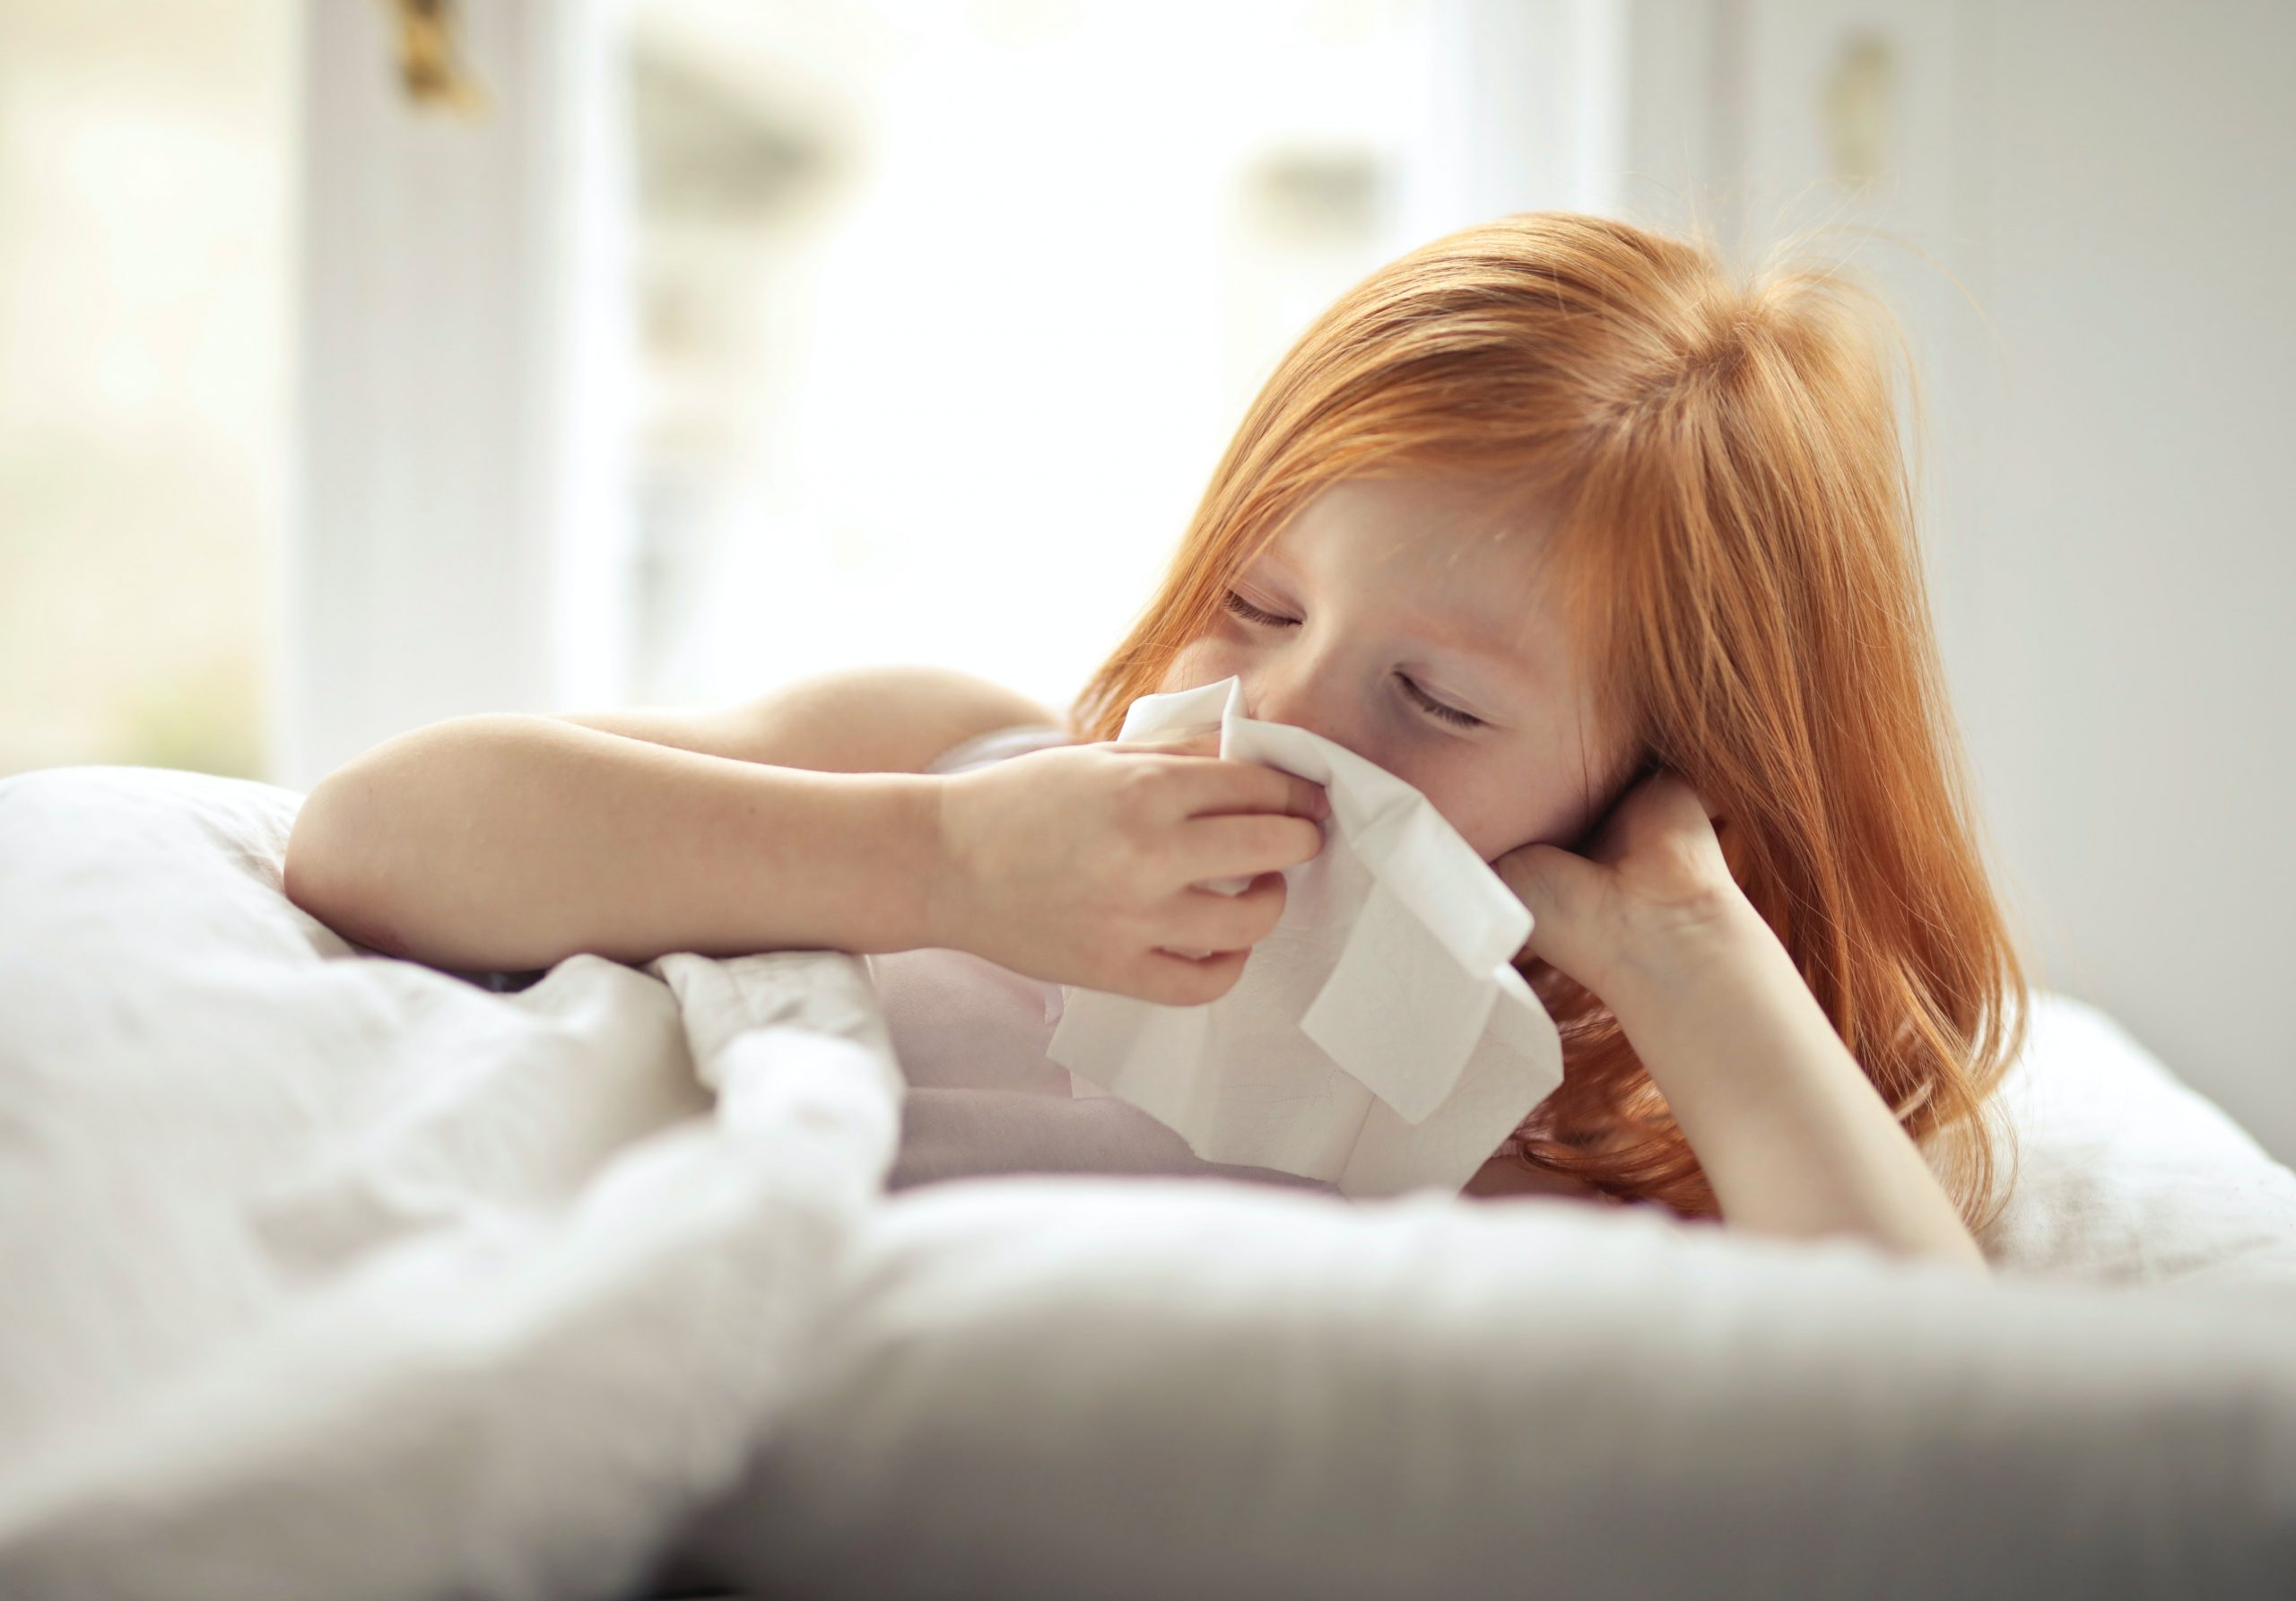 Photo of red headed Caucasian girl lying in bed sick and blowing her nose with a tissue. Photo could represent sickness anxiety and the need for online anxiety treatment in Illinois.